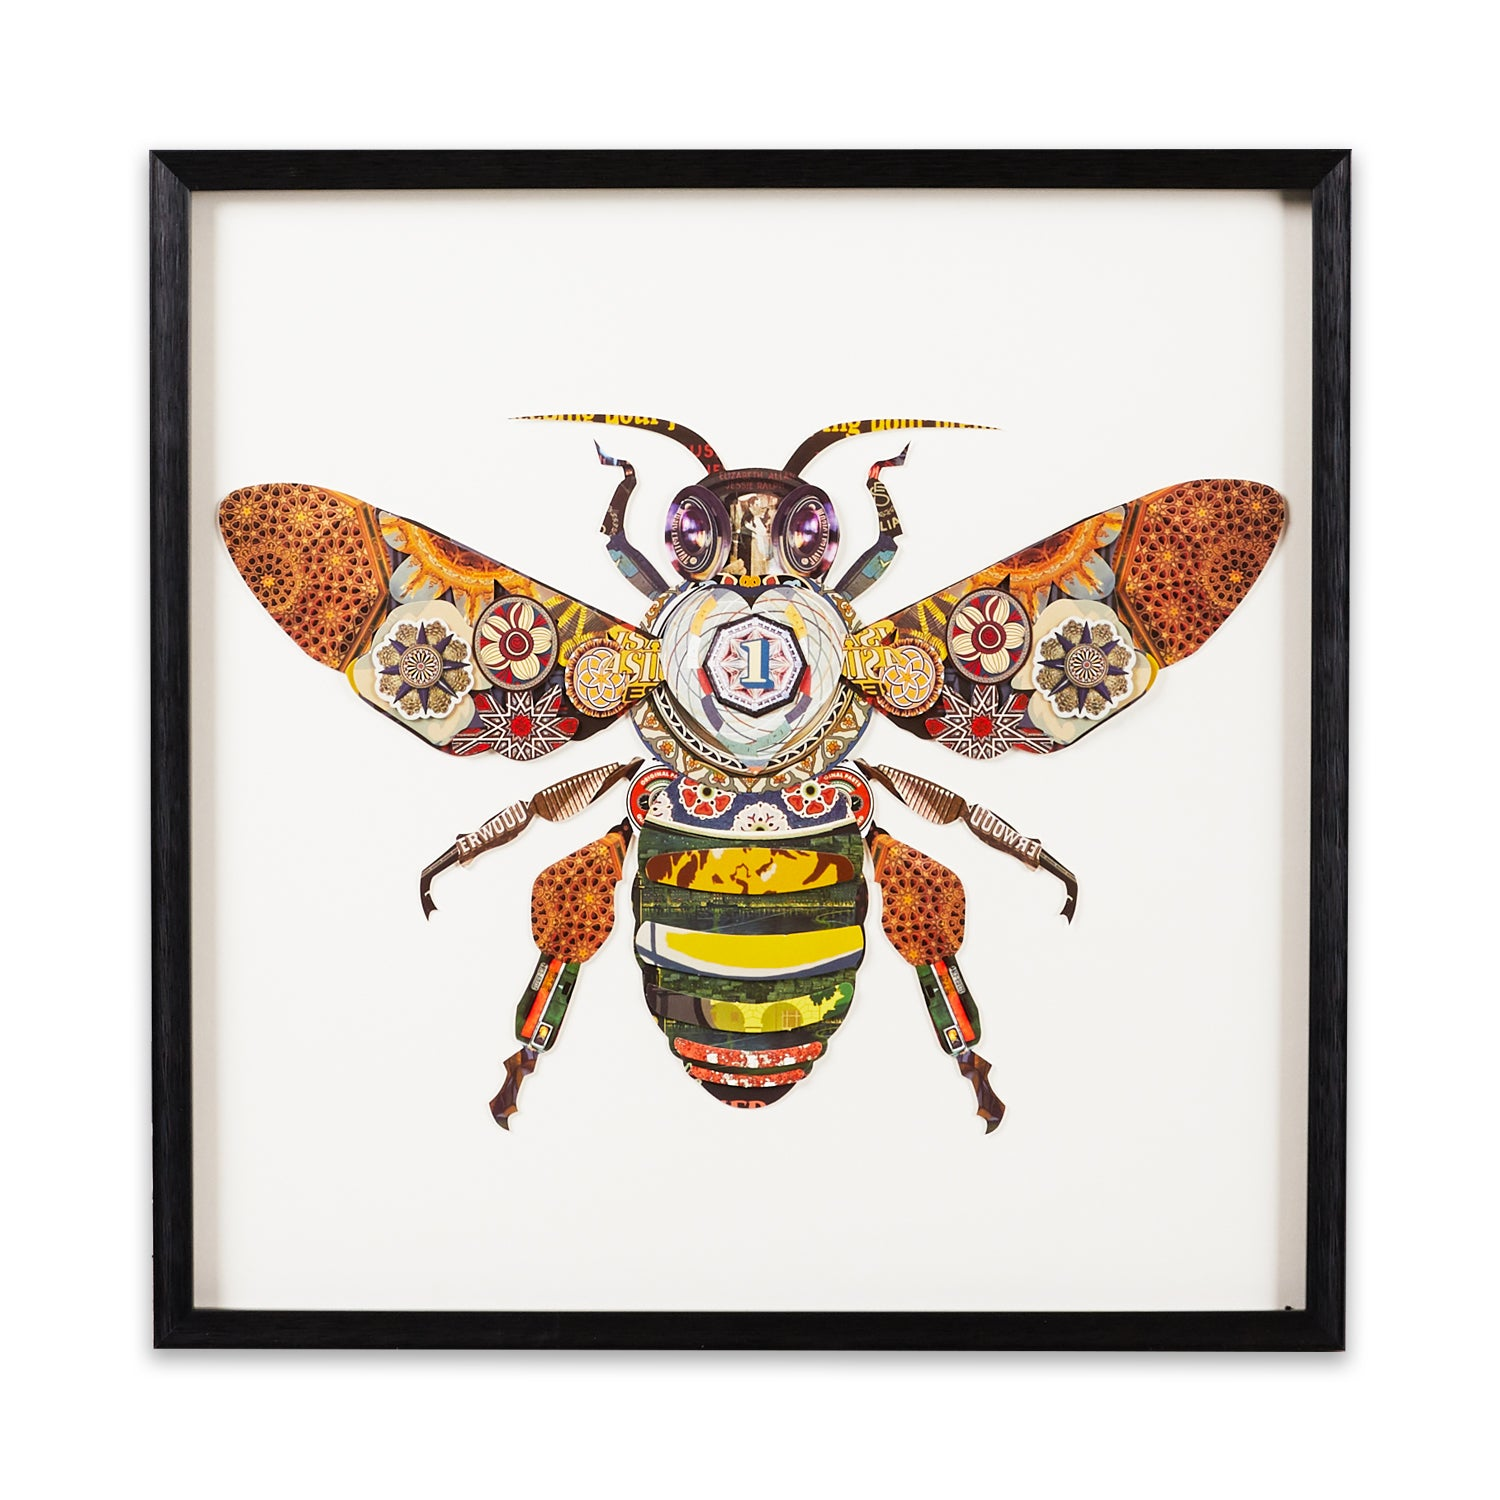 Bumble Bee framed paper collage